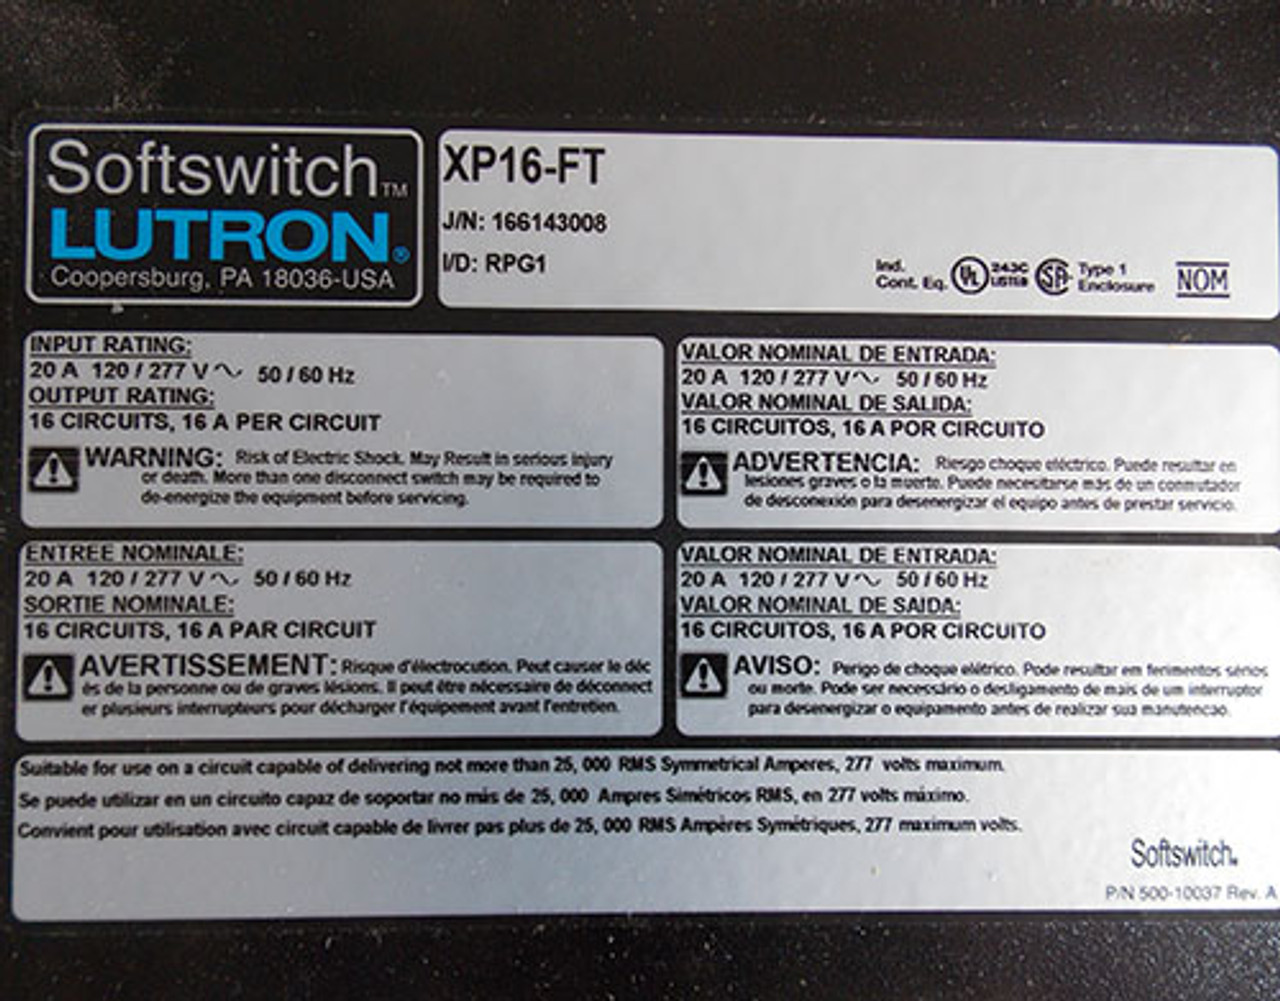 Lutron XP16-FT Softswitch Power Panel 16 Circuit 120/277V 60Hz 20 Amp - New